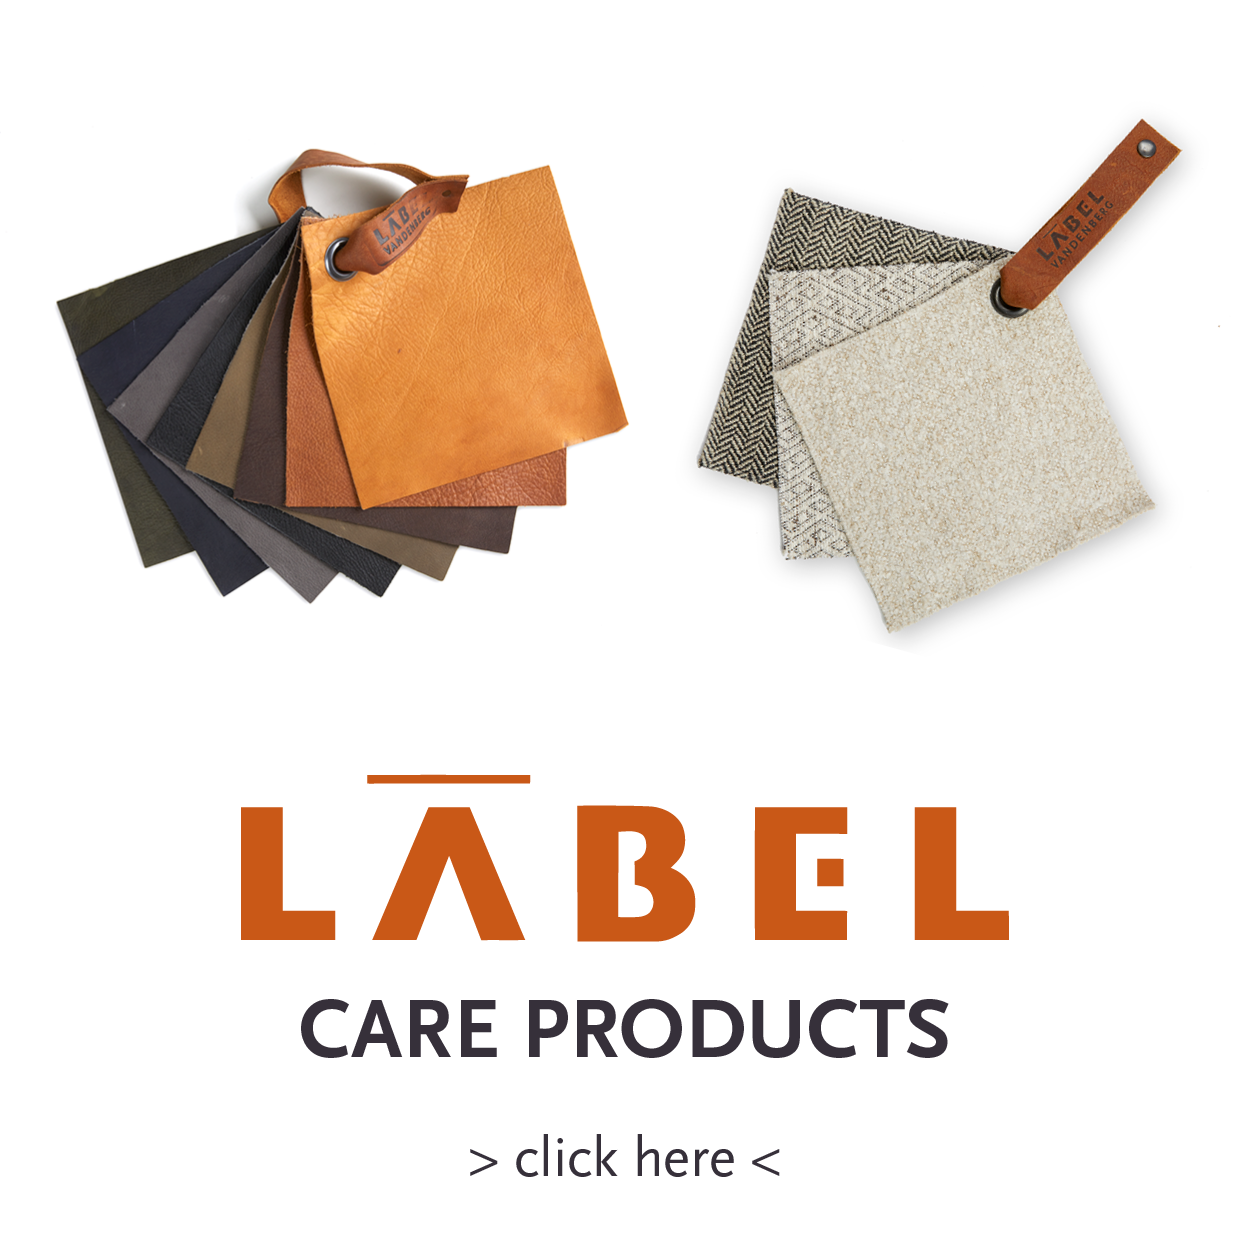 LABEL Care Products